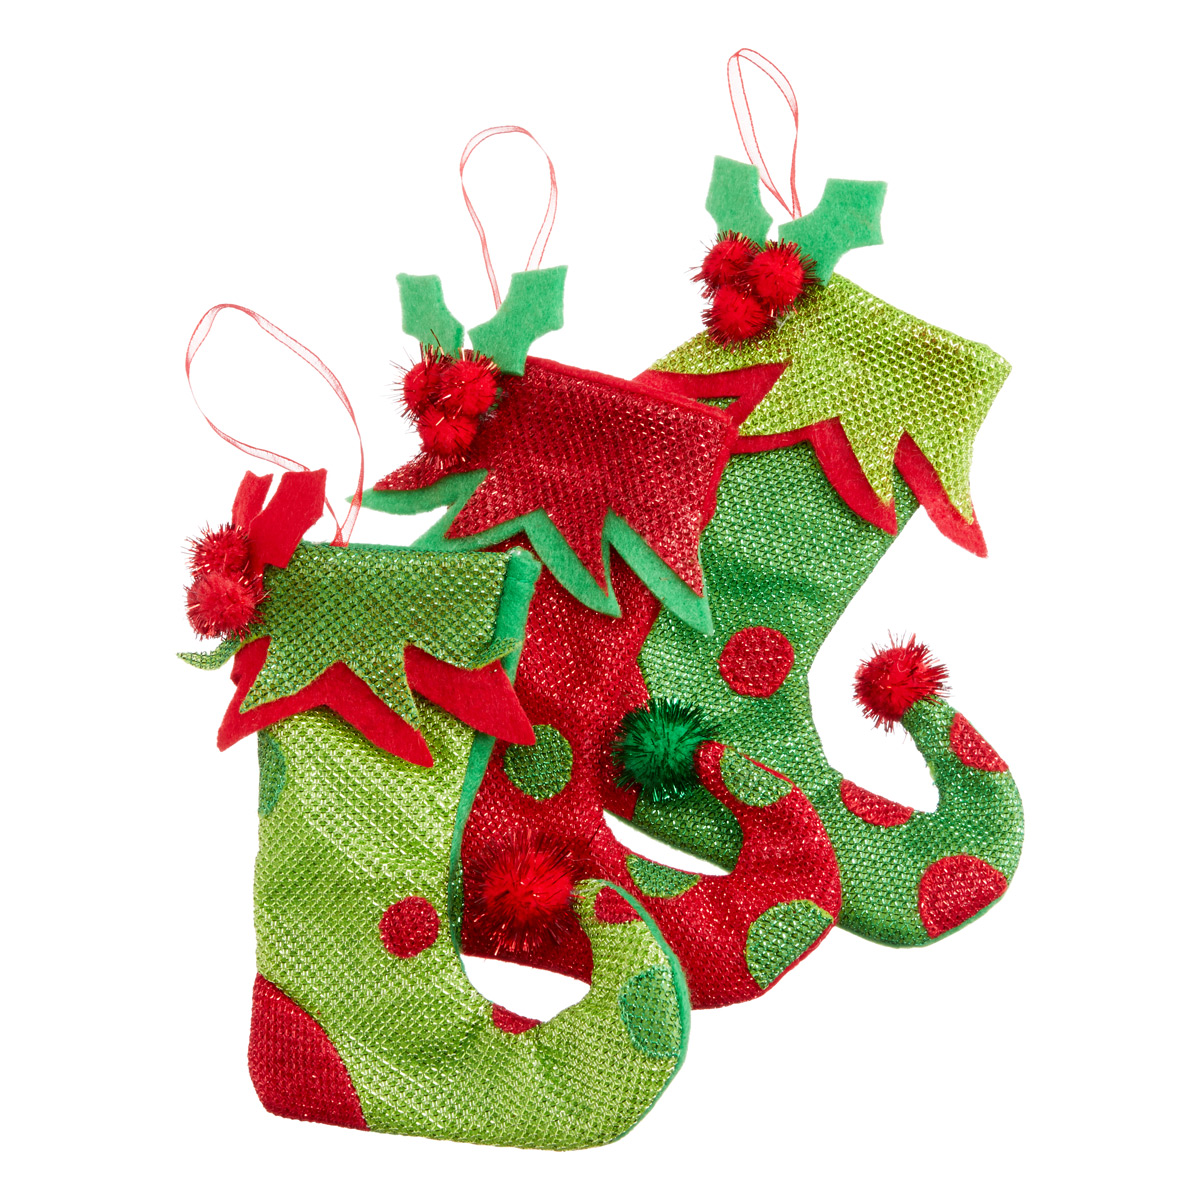 Holiday Stockings Tie-On